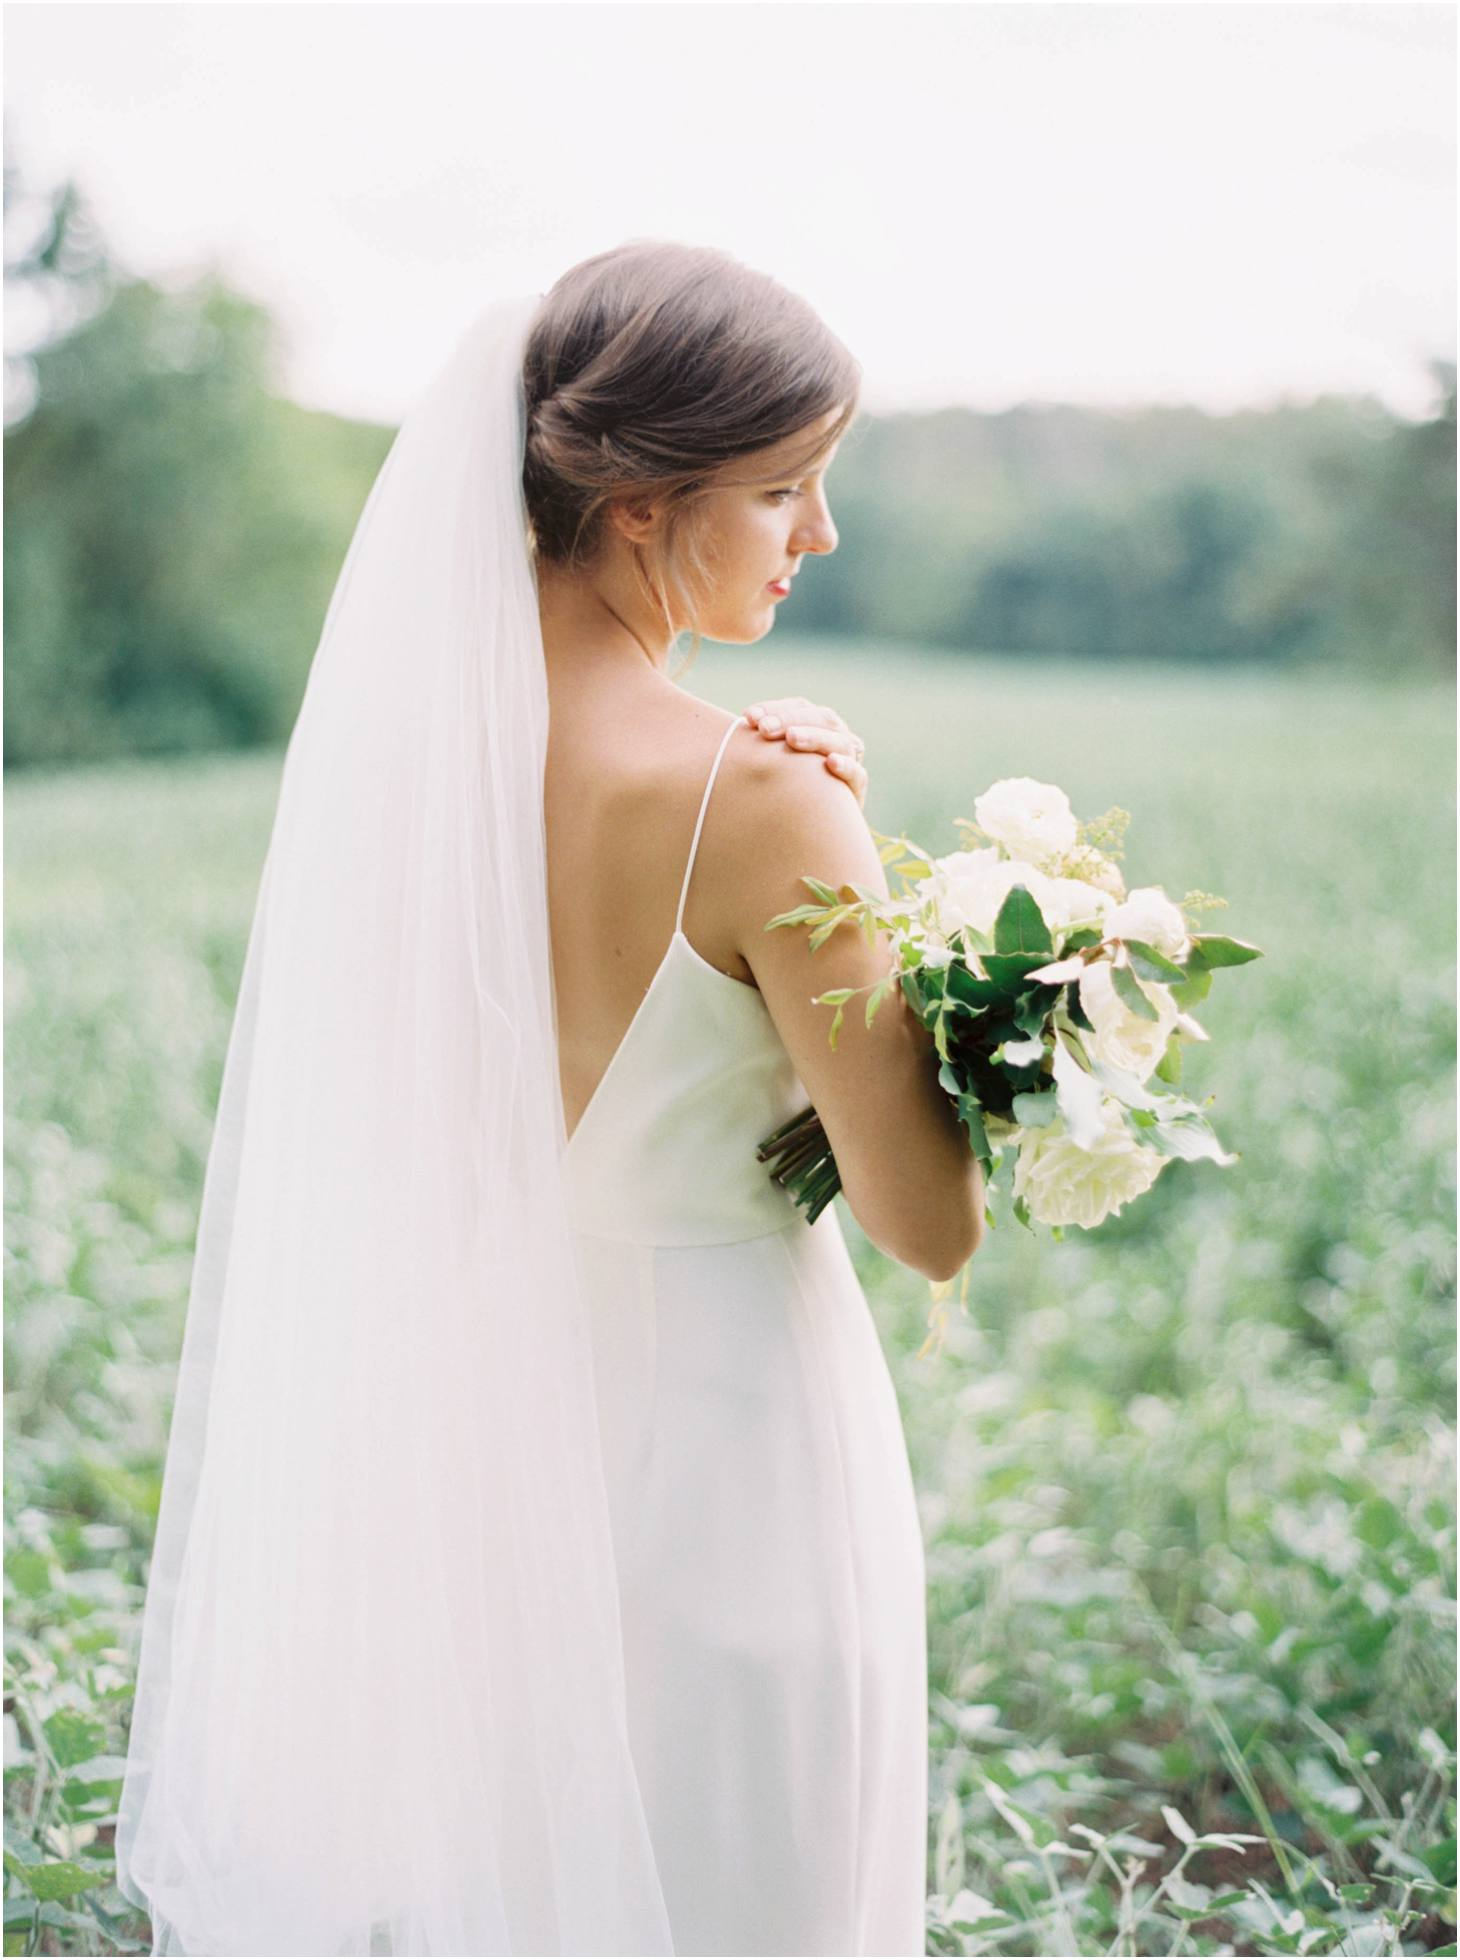 kim-stockwell-photography-fine-art-film-bridals-richmond-va-peyton_0871